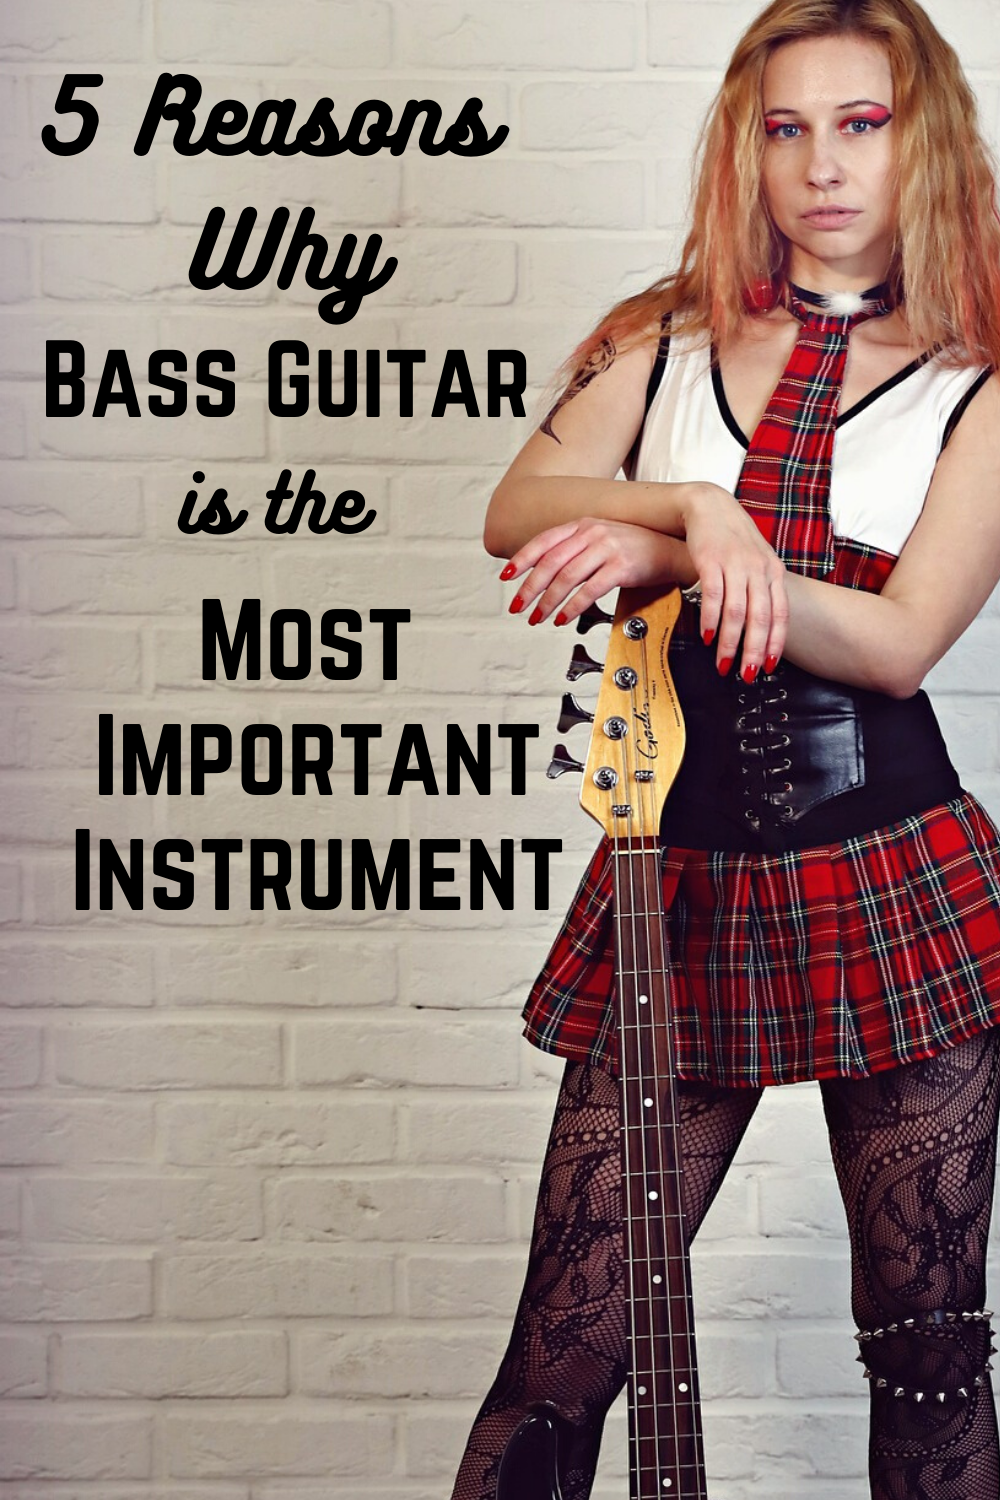 Bass is the Most Important Instrument - 5 Reasons Why